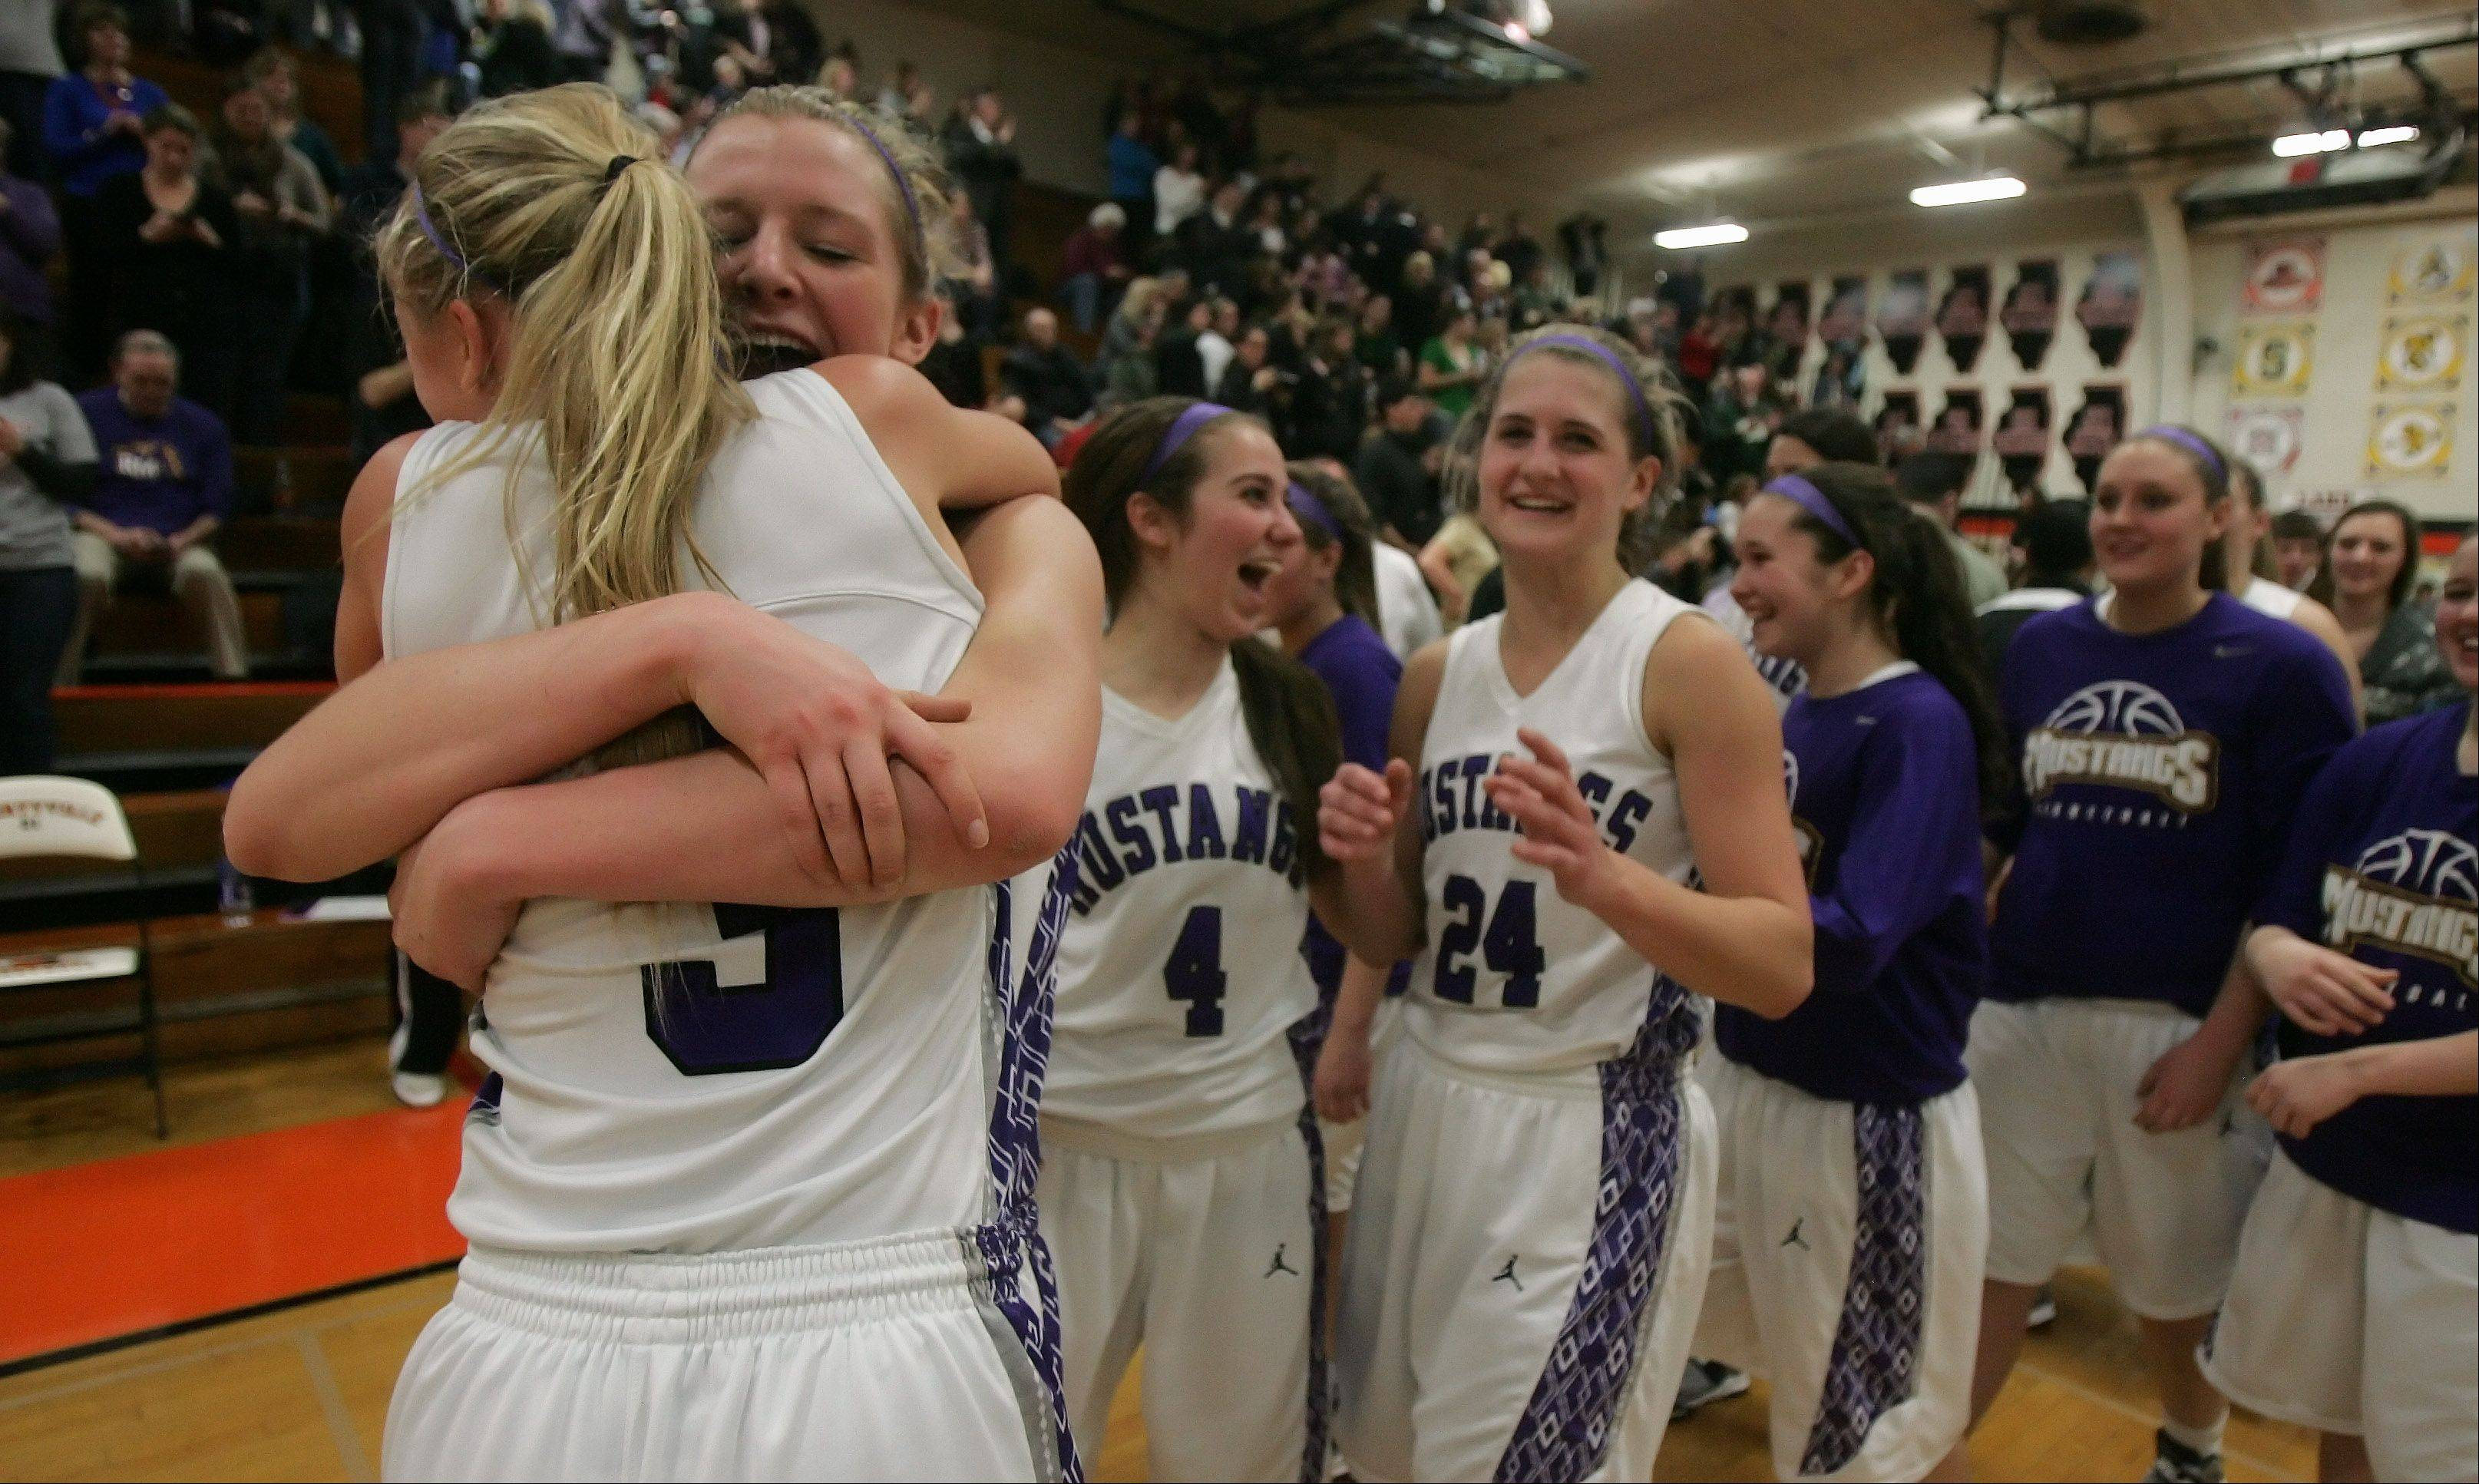 Rolling Meadows players Jackie Kempf, left, hugs Jenny Vliet after the game.